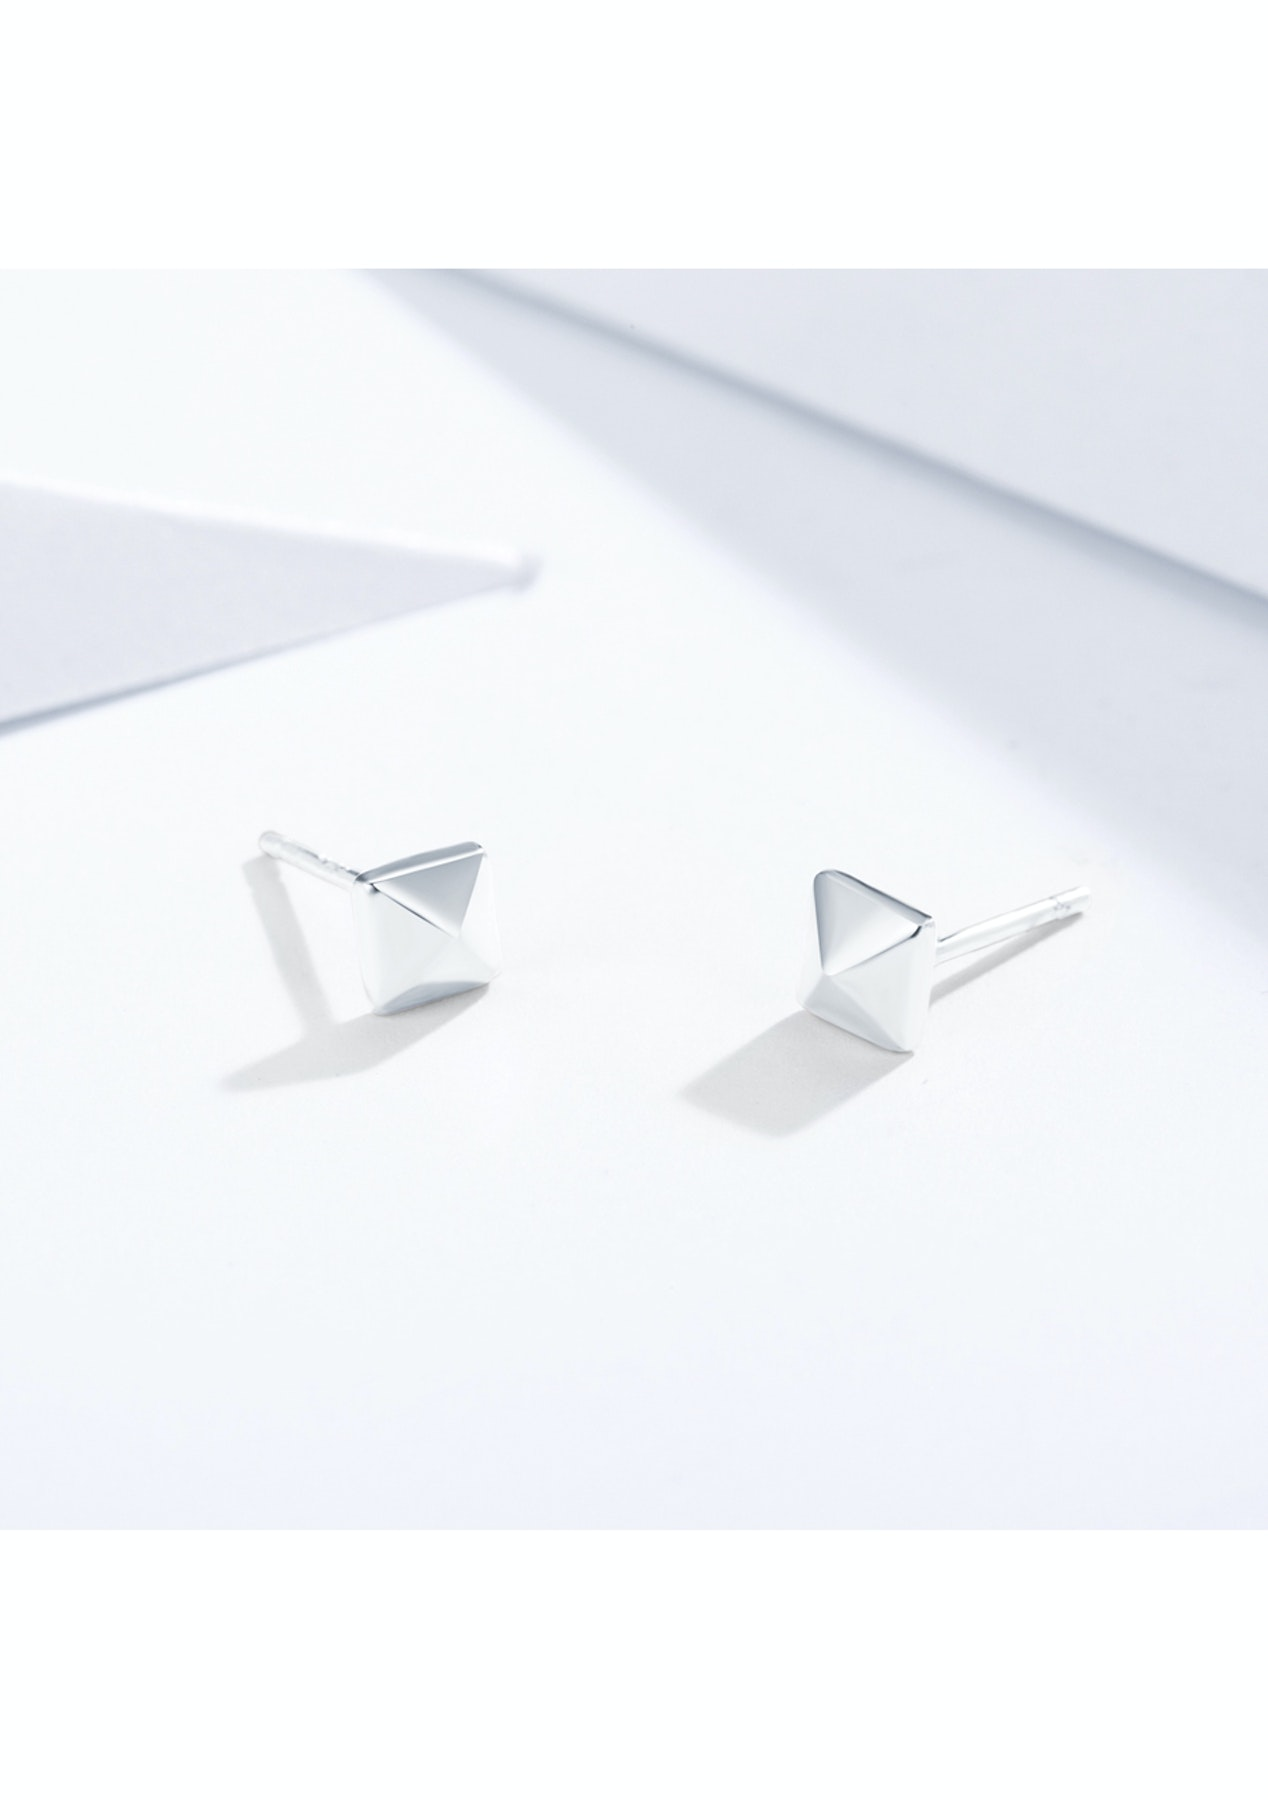 afae64c01 Square Pyramid Stud Earrings In Sterling Silver Rhodium Plated - My  Jewellery Store - Onceit